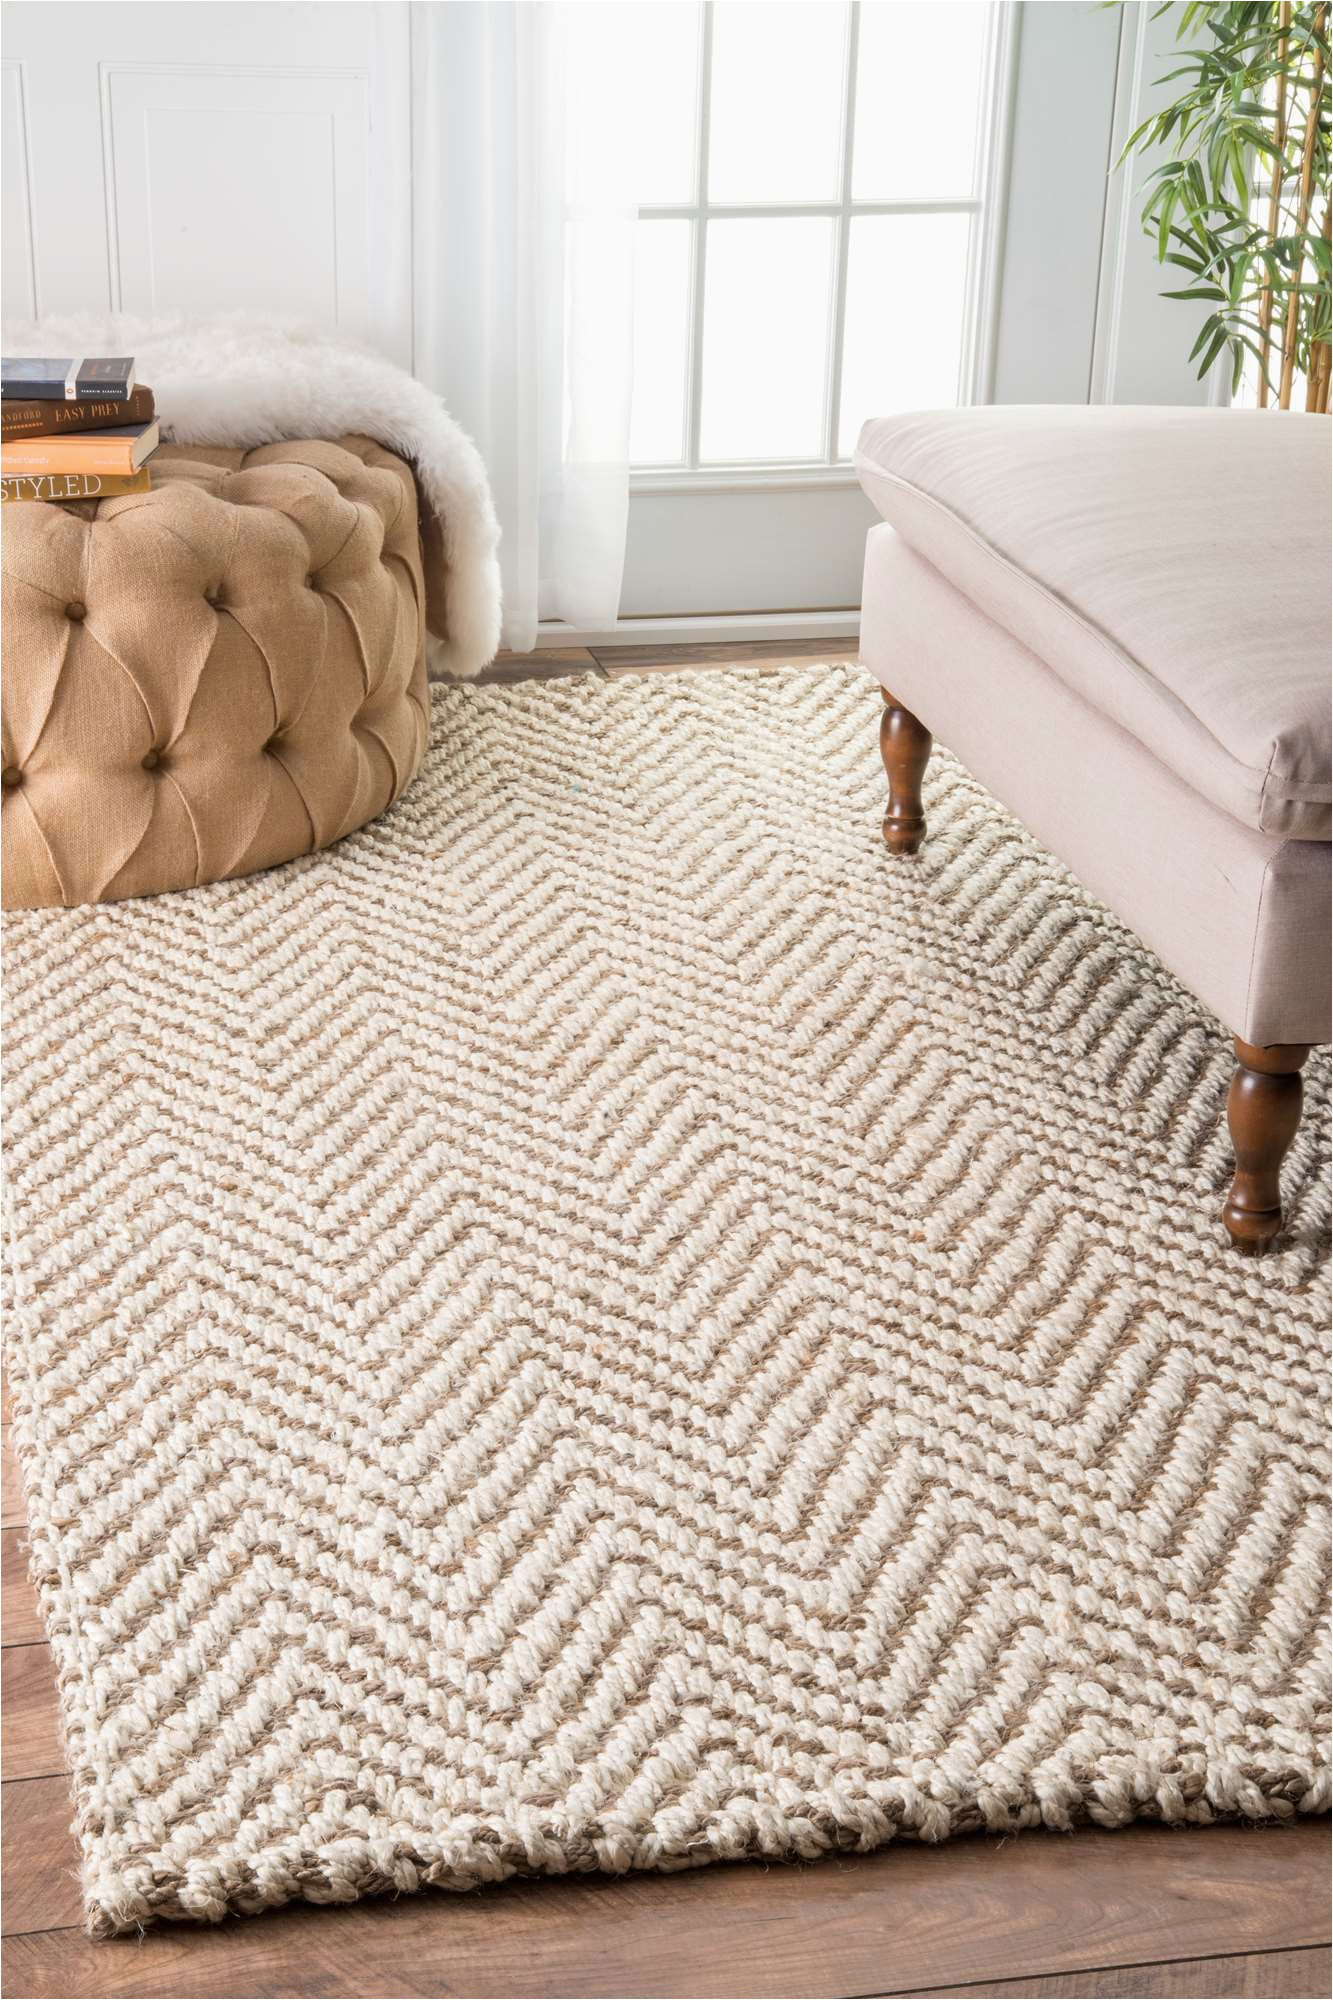 10 natural fiber 8x10 jute and seagrass rugs under 300